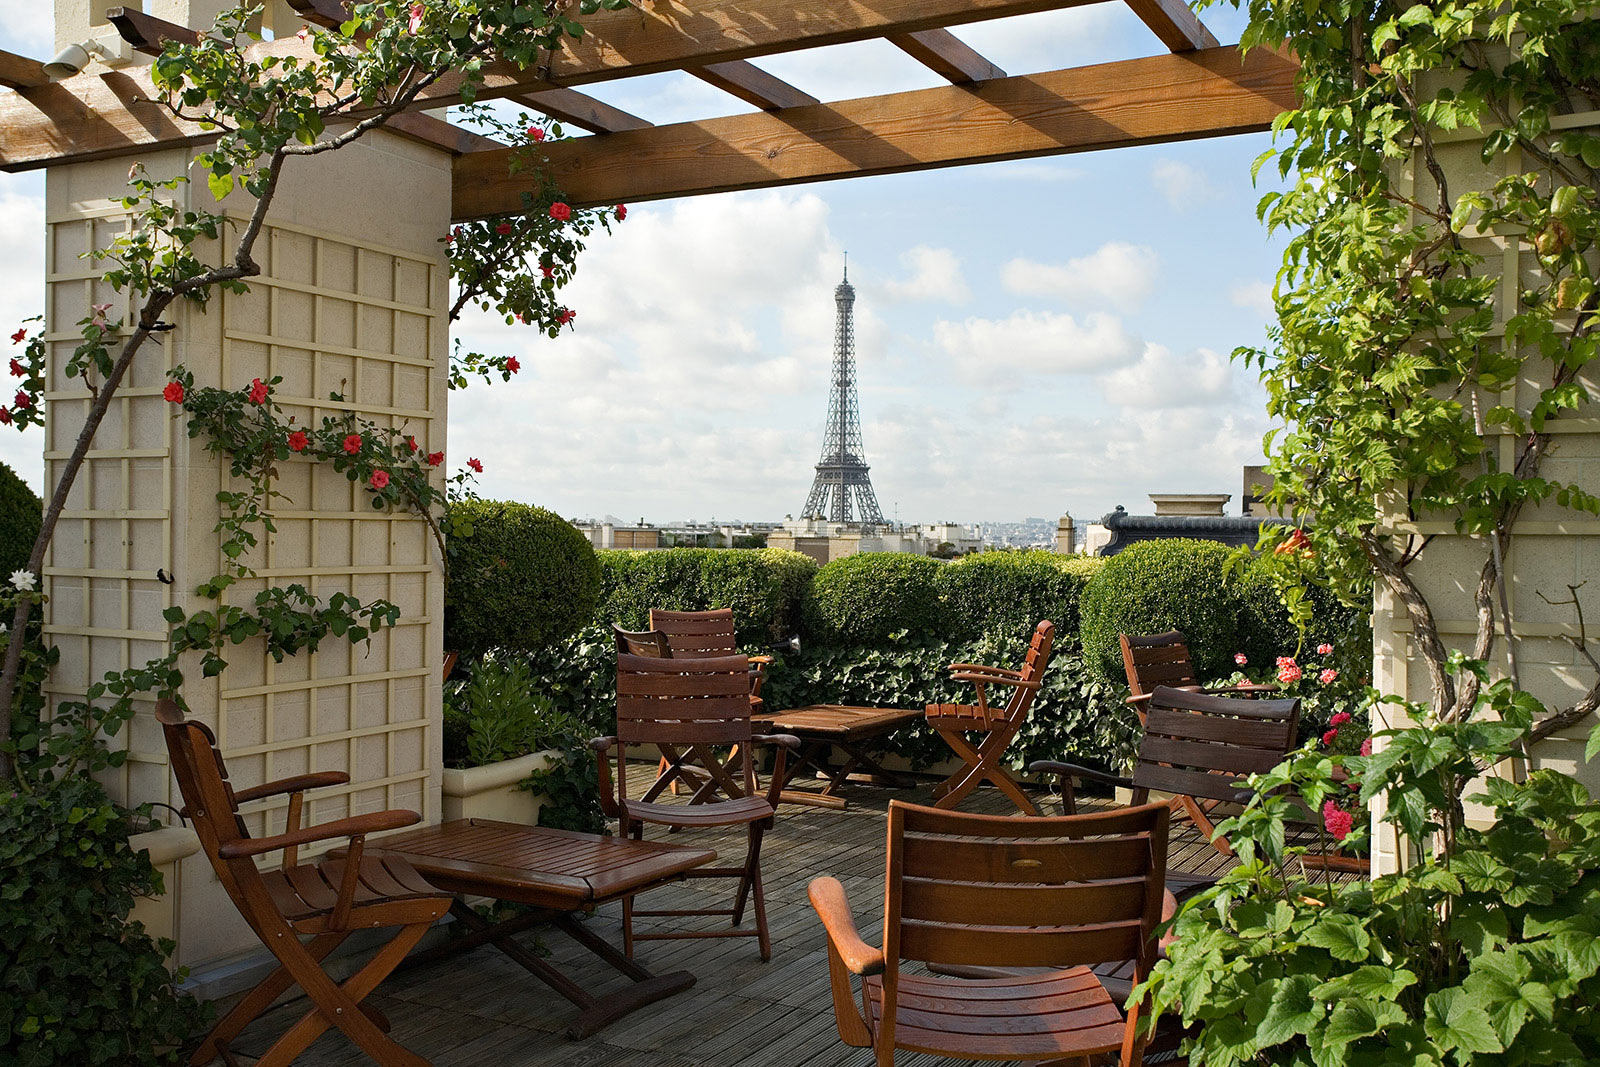 133-so-la-terrasse-photo-animation-02-fr